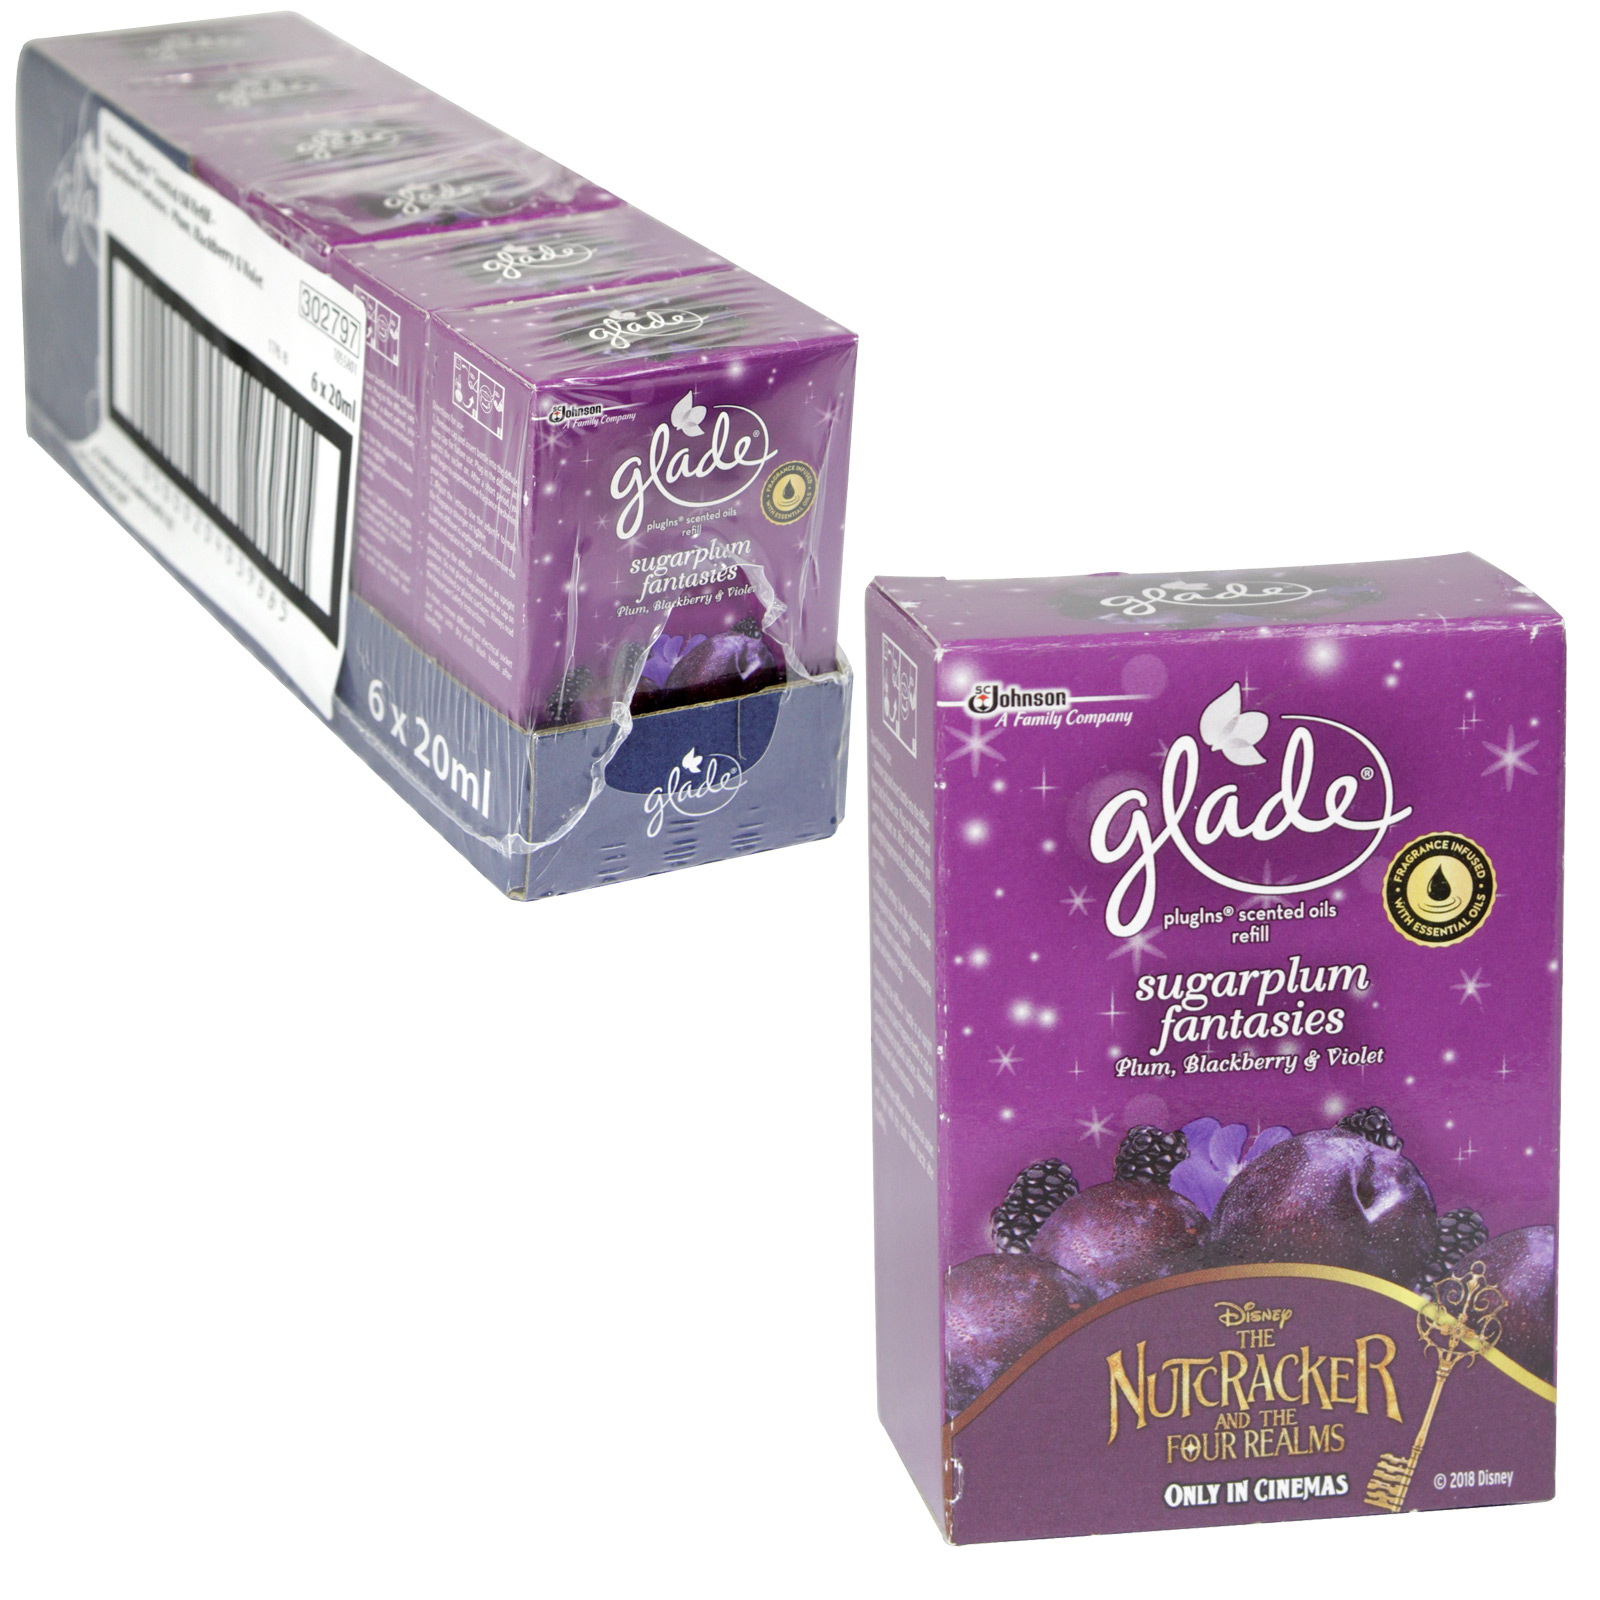 GLADE PLUG-IN REFILL 20ML SUGARPLUM FANTASIES X6